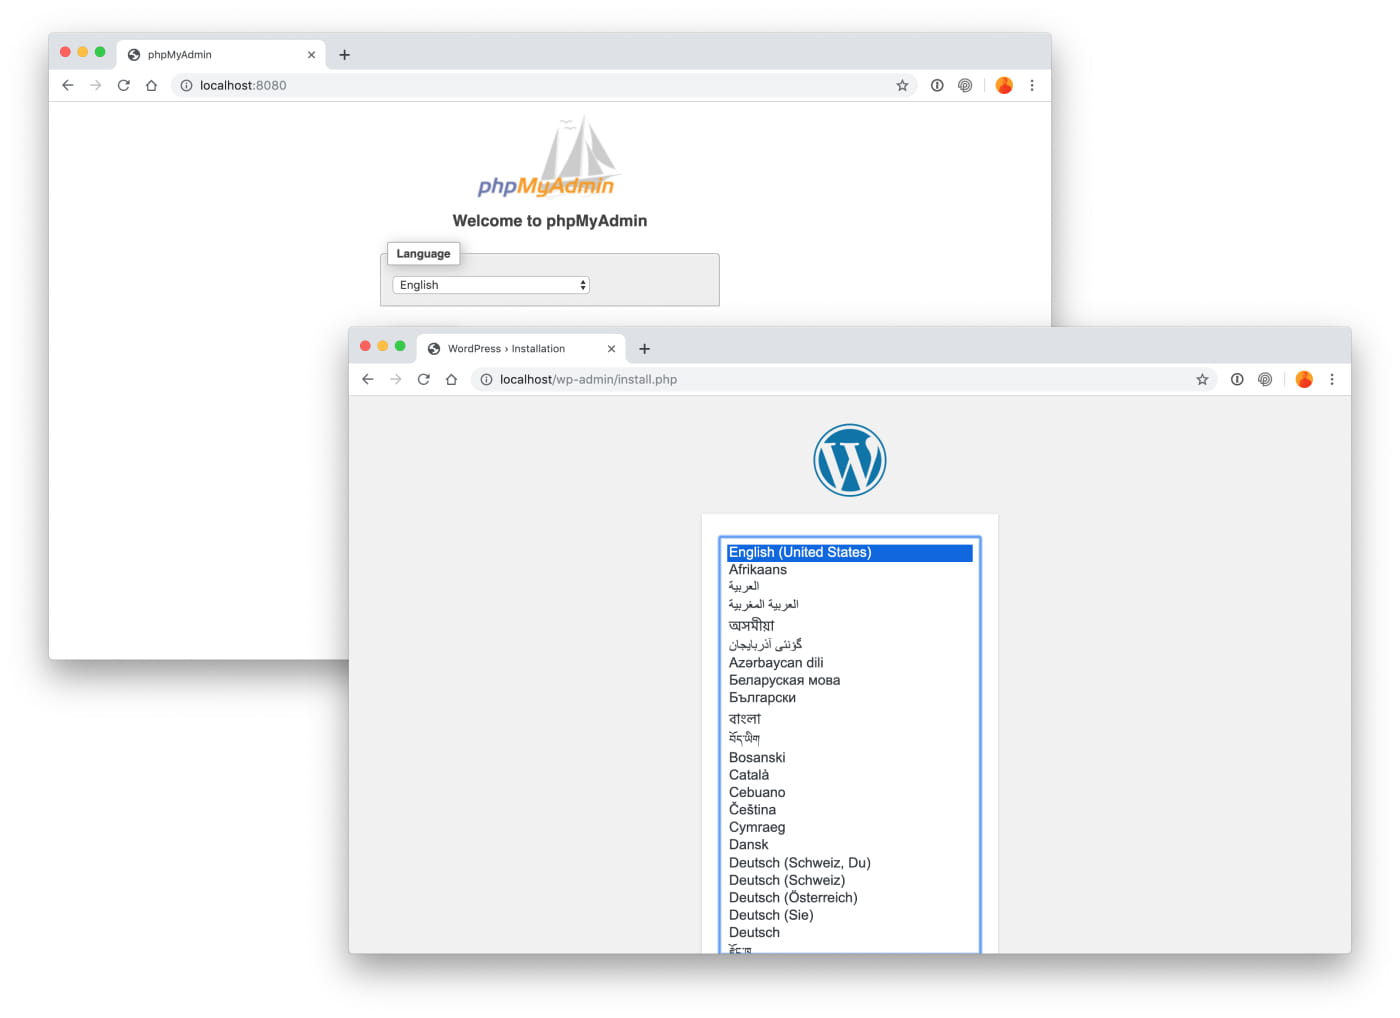 Run docker-compose command to spin up a WordPress website